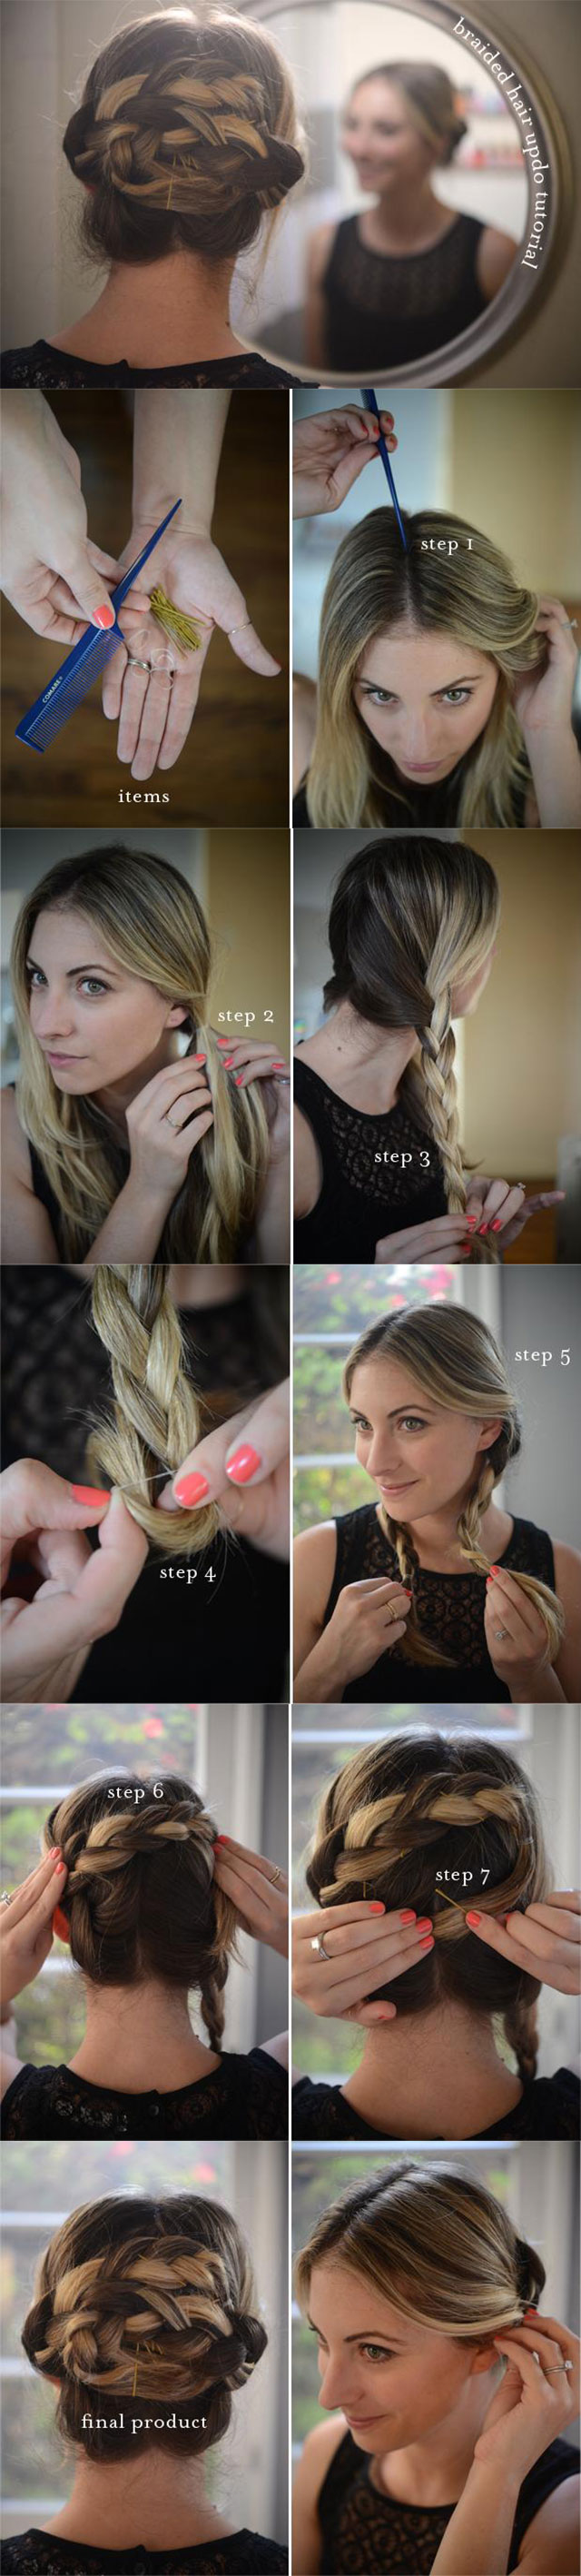 quick easy hairstyles with braids DIY  Your Step by Step for the Best Cute Hairstyles   Fashion Diva